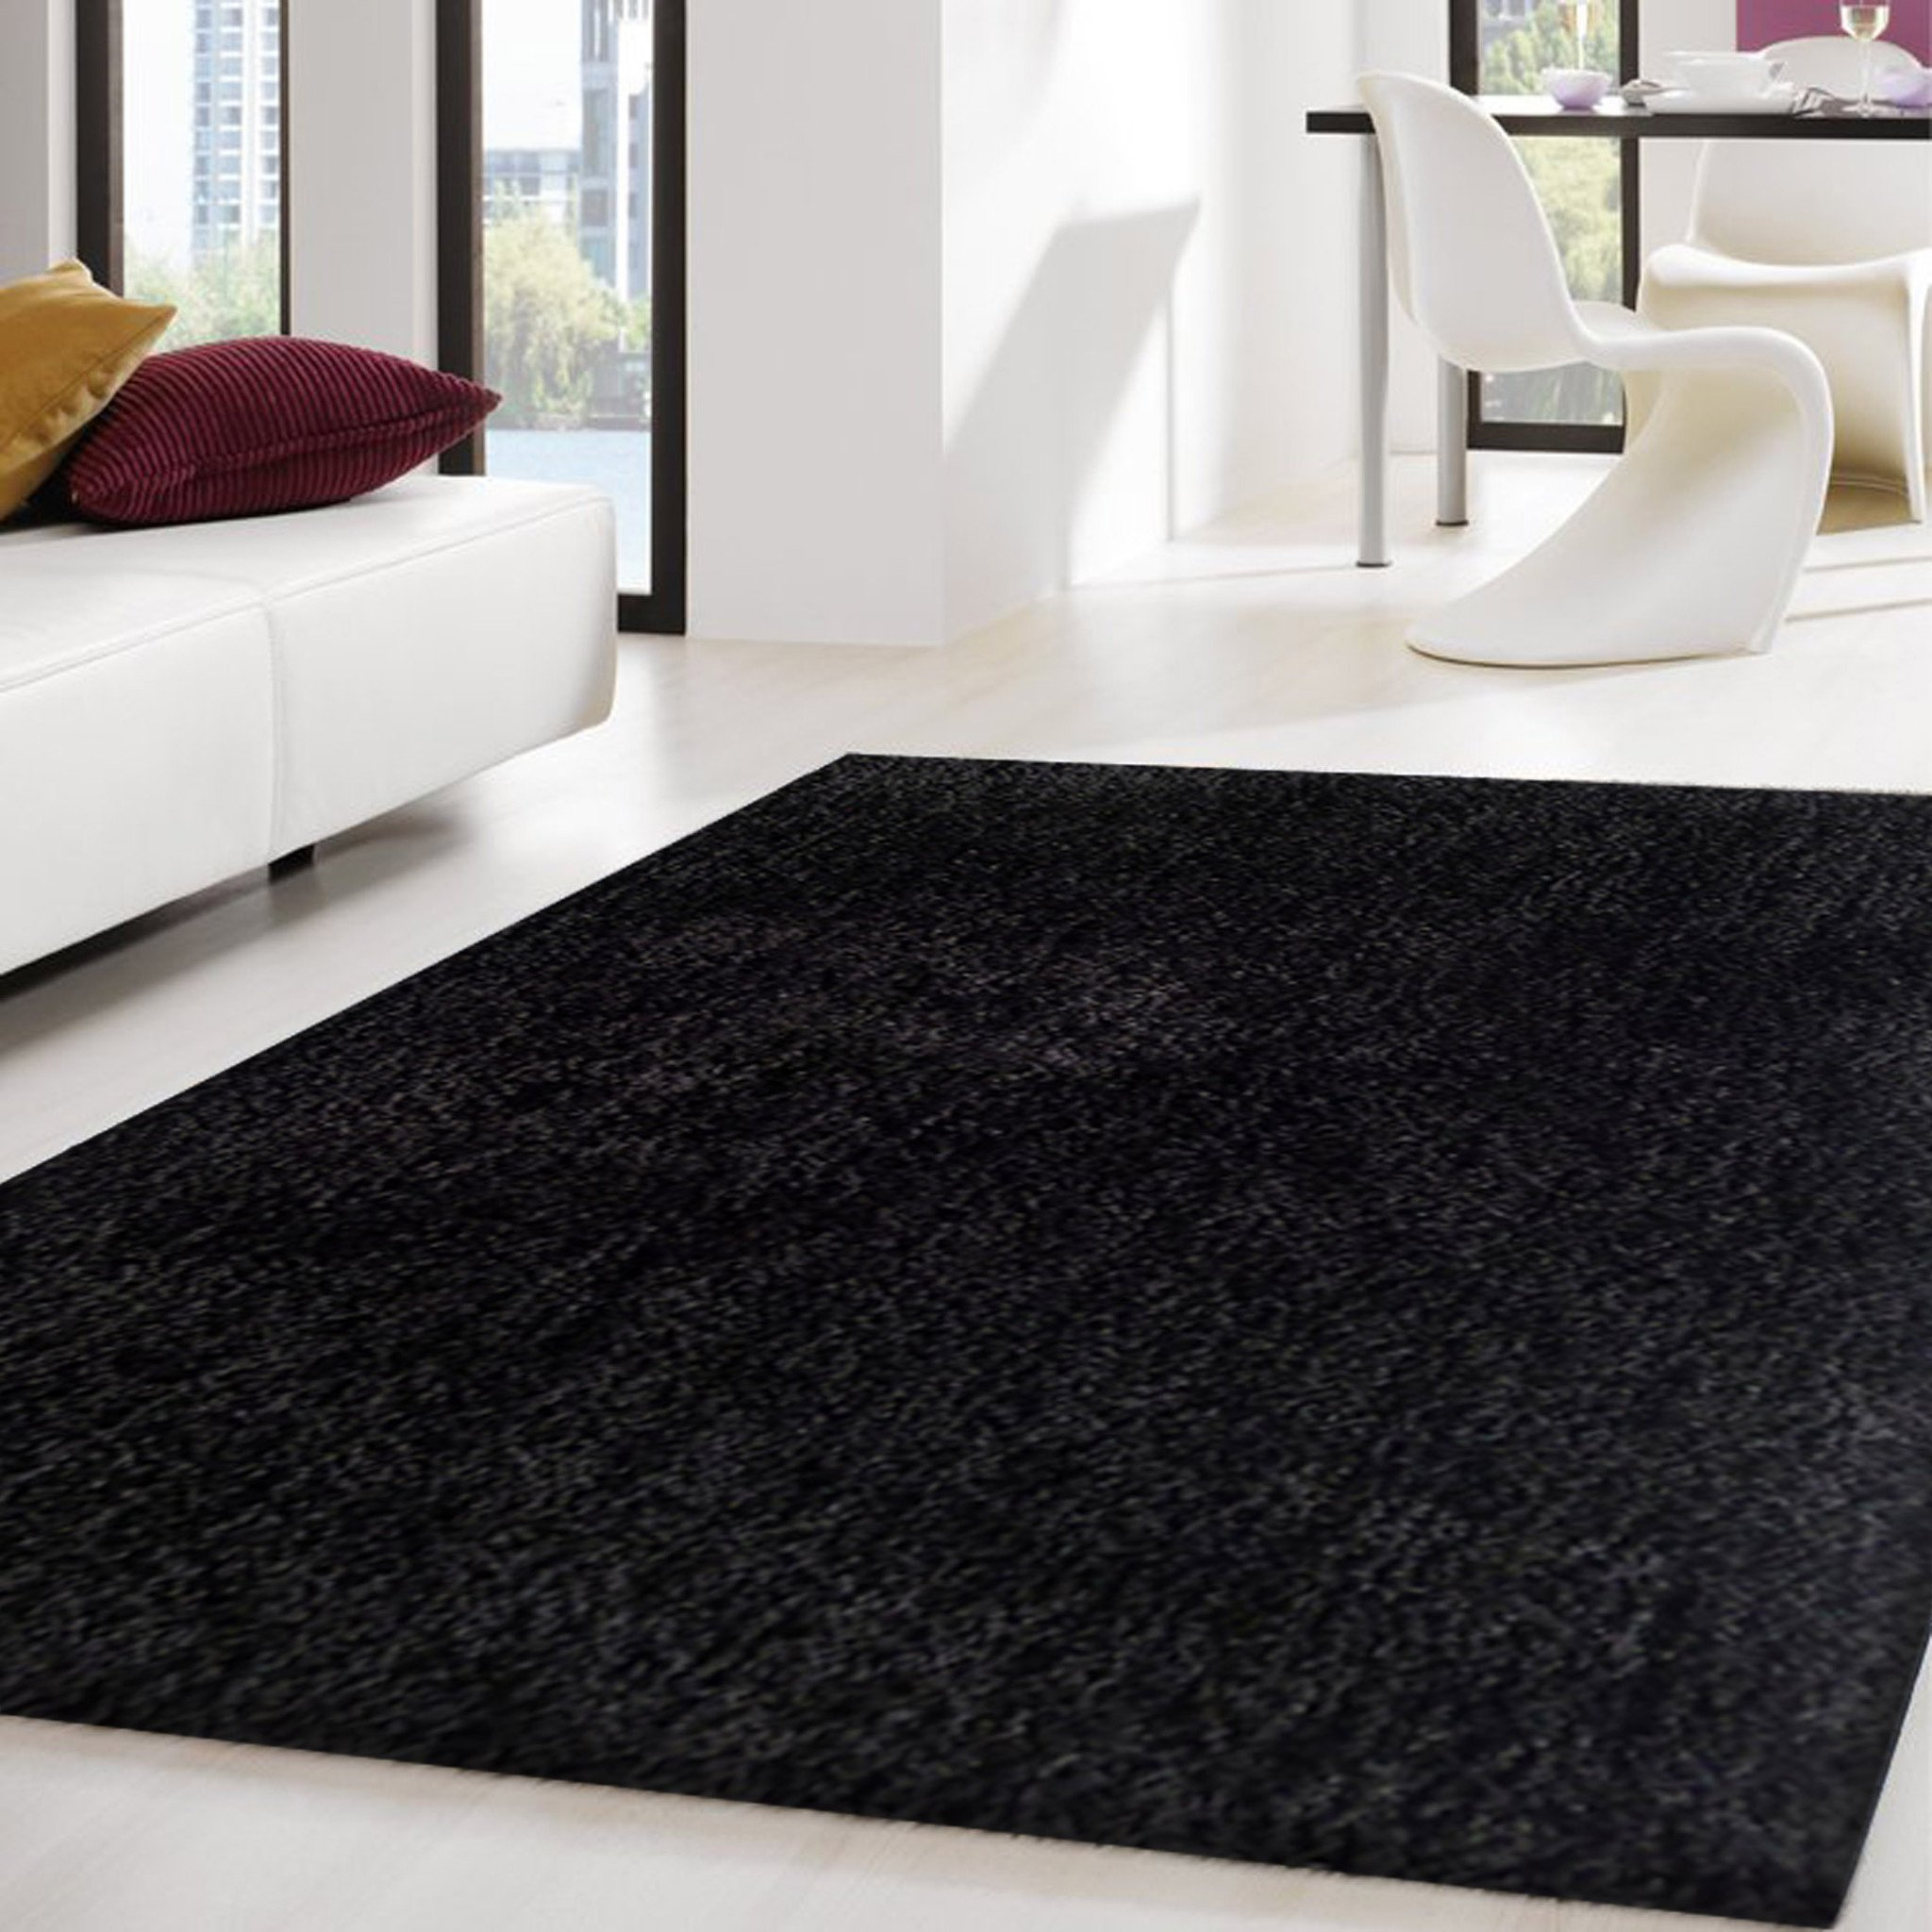 black area rugs 2-piece set | solid black thick plush shag area rug with rug pad LQPQMOU